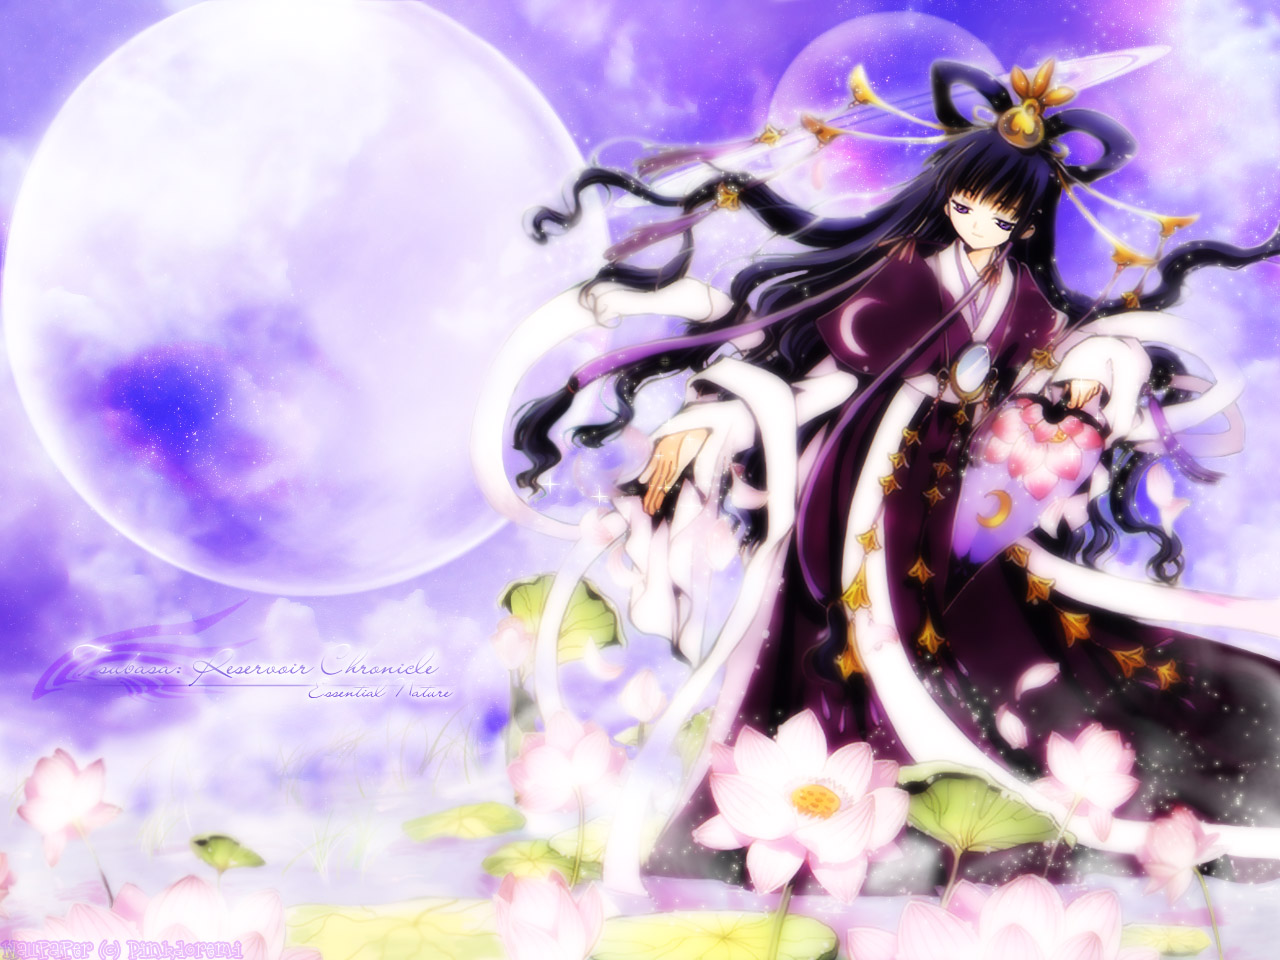 [*Ángeles 2*] Clampmania_tomoyo_hime_1280